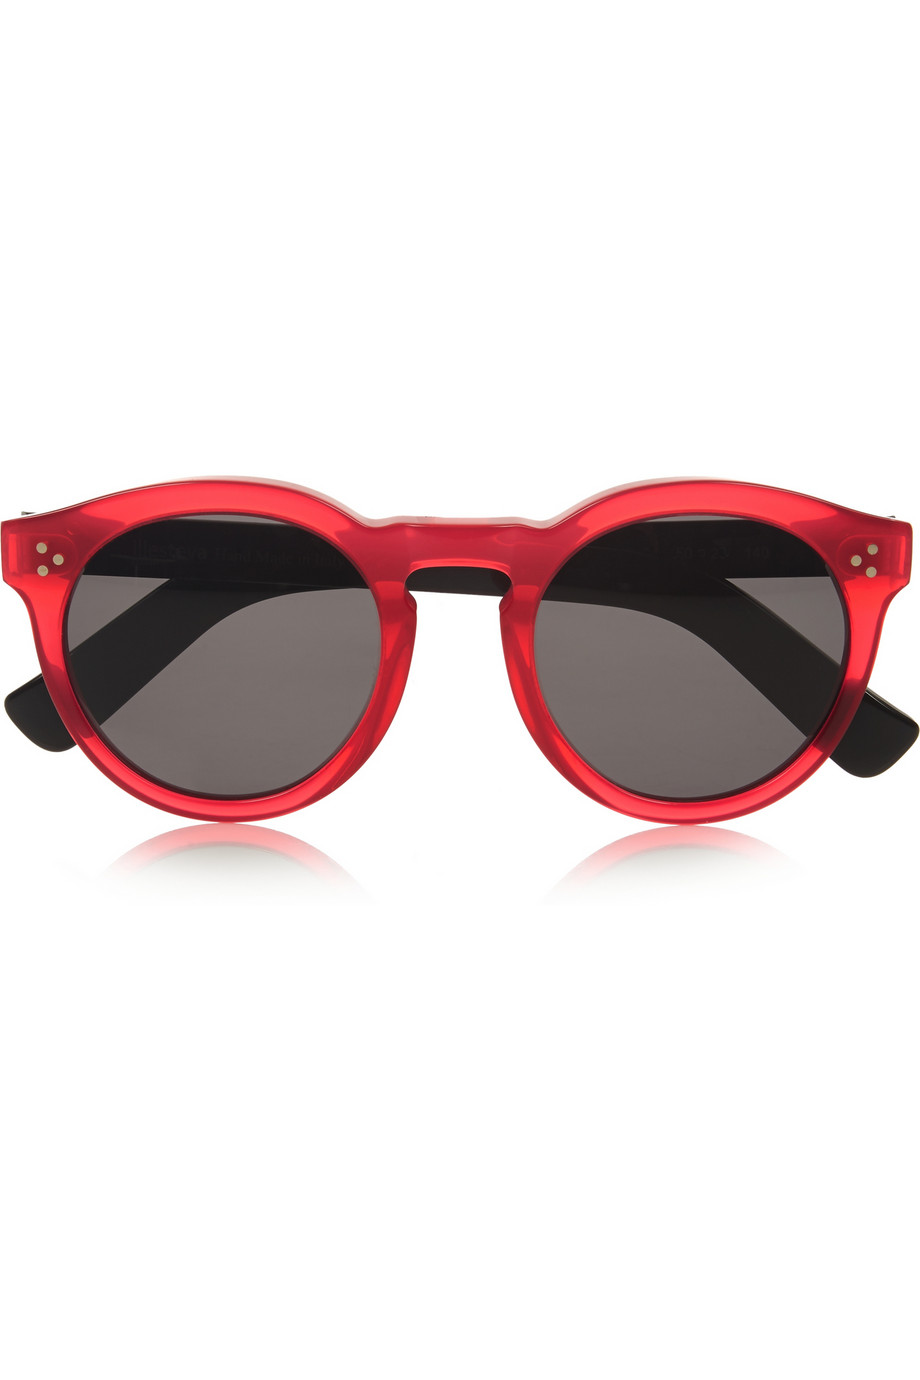 Illesteva  sunglasses - was $290, now $203